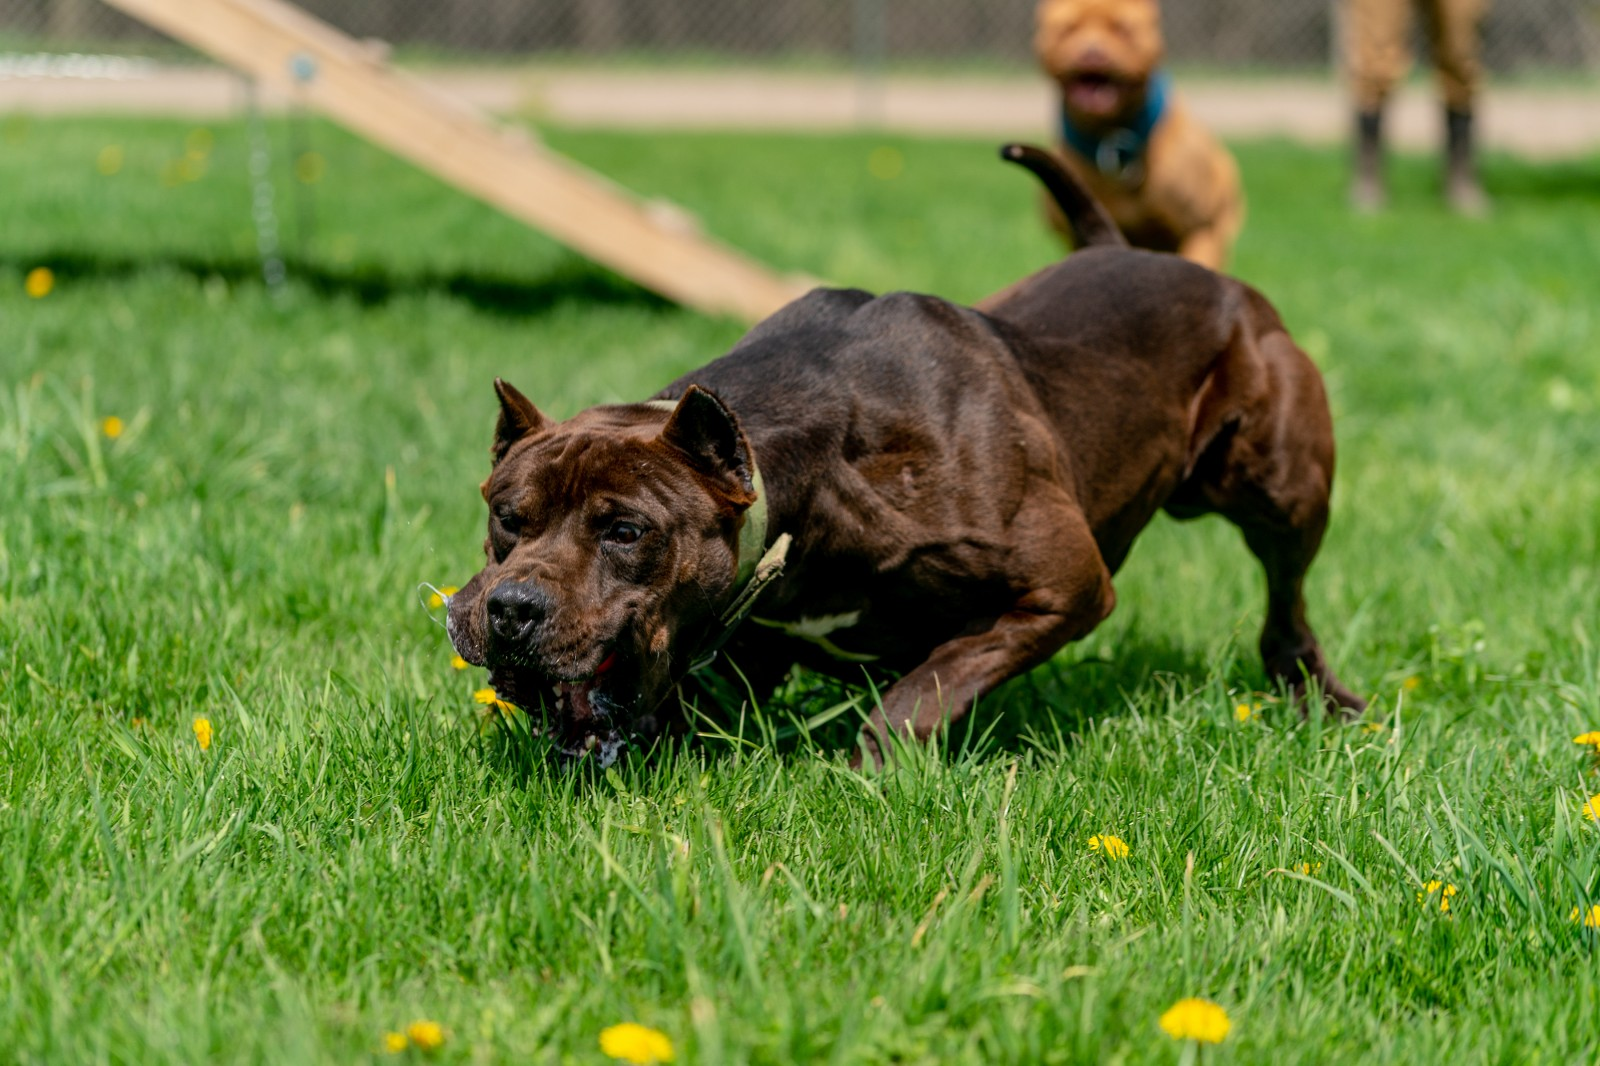 Hitman, a black XL pit bull from Unleashed Kennelz full speed, low to the ground, chases something off camera.